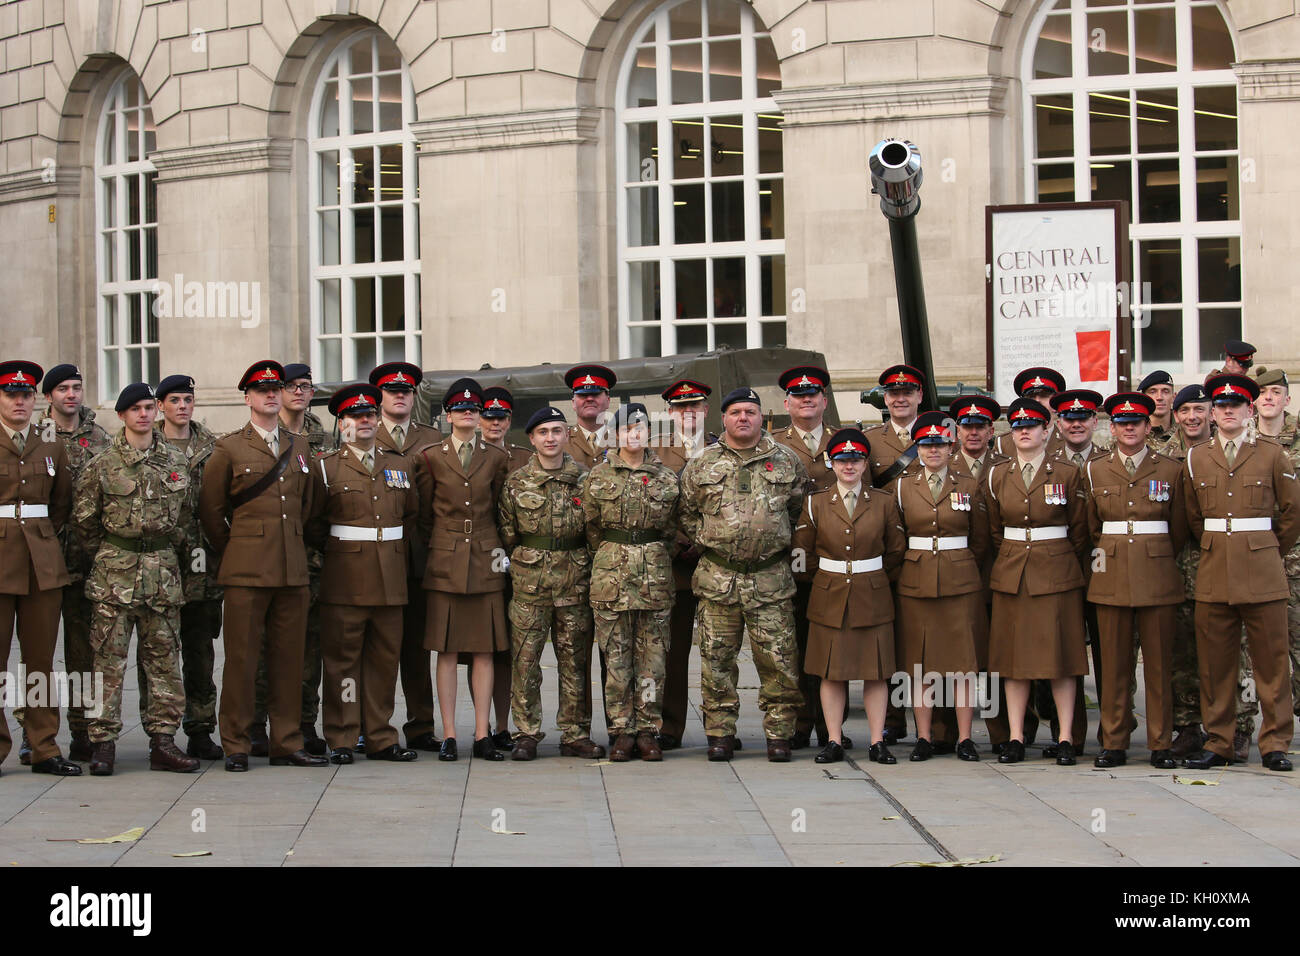 Manchester, UK. 12th Nov, 2017. Members of the Royal Artillery under the command of Major DM Braddock RA, St Peters - Stock Image